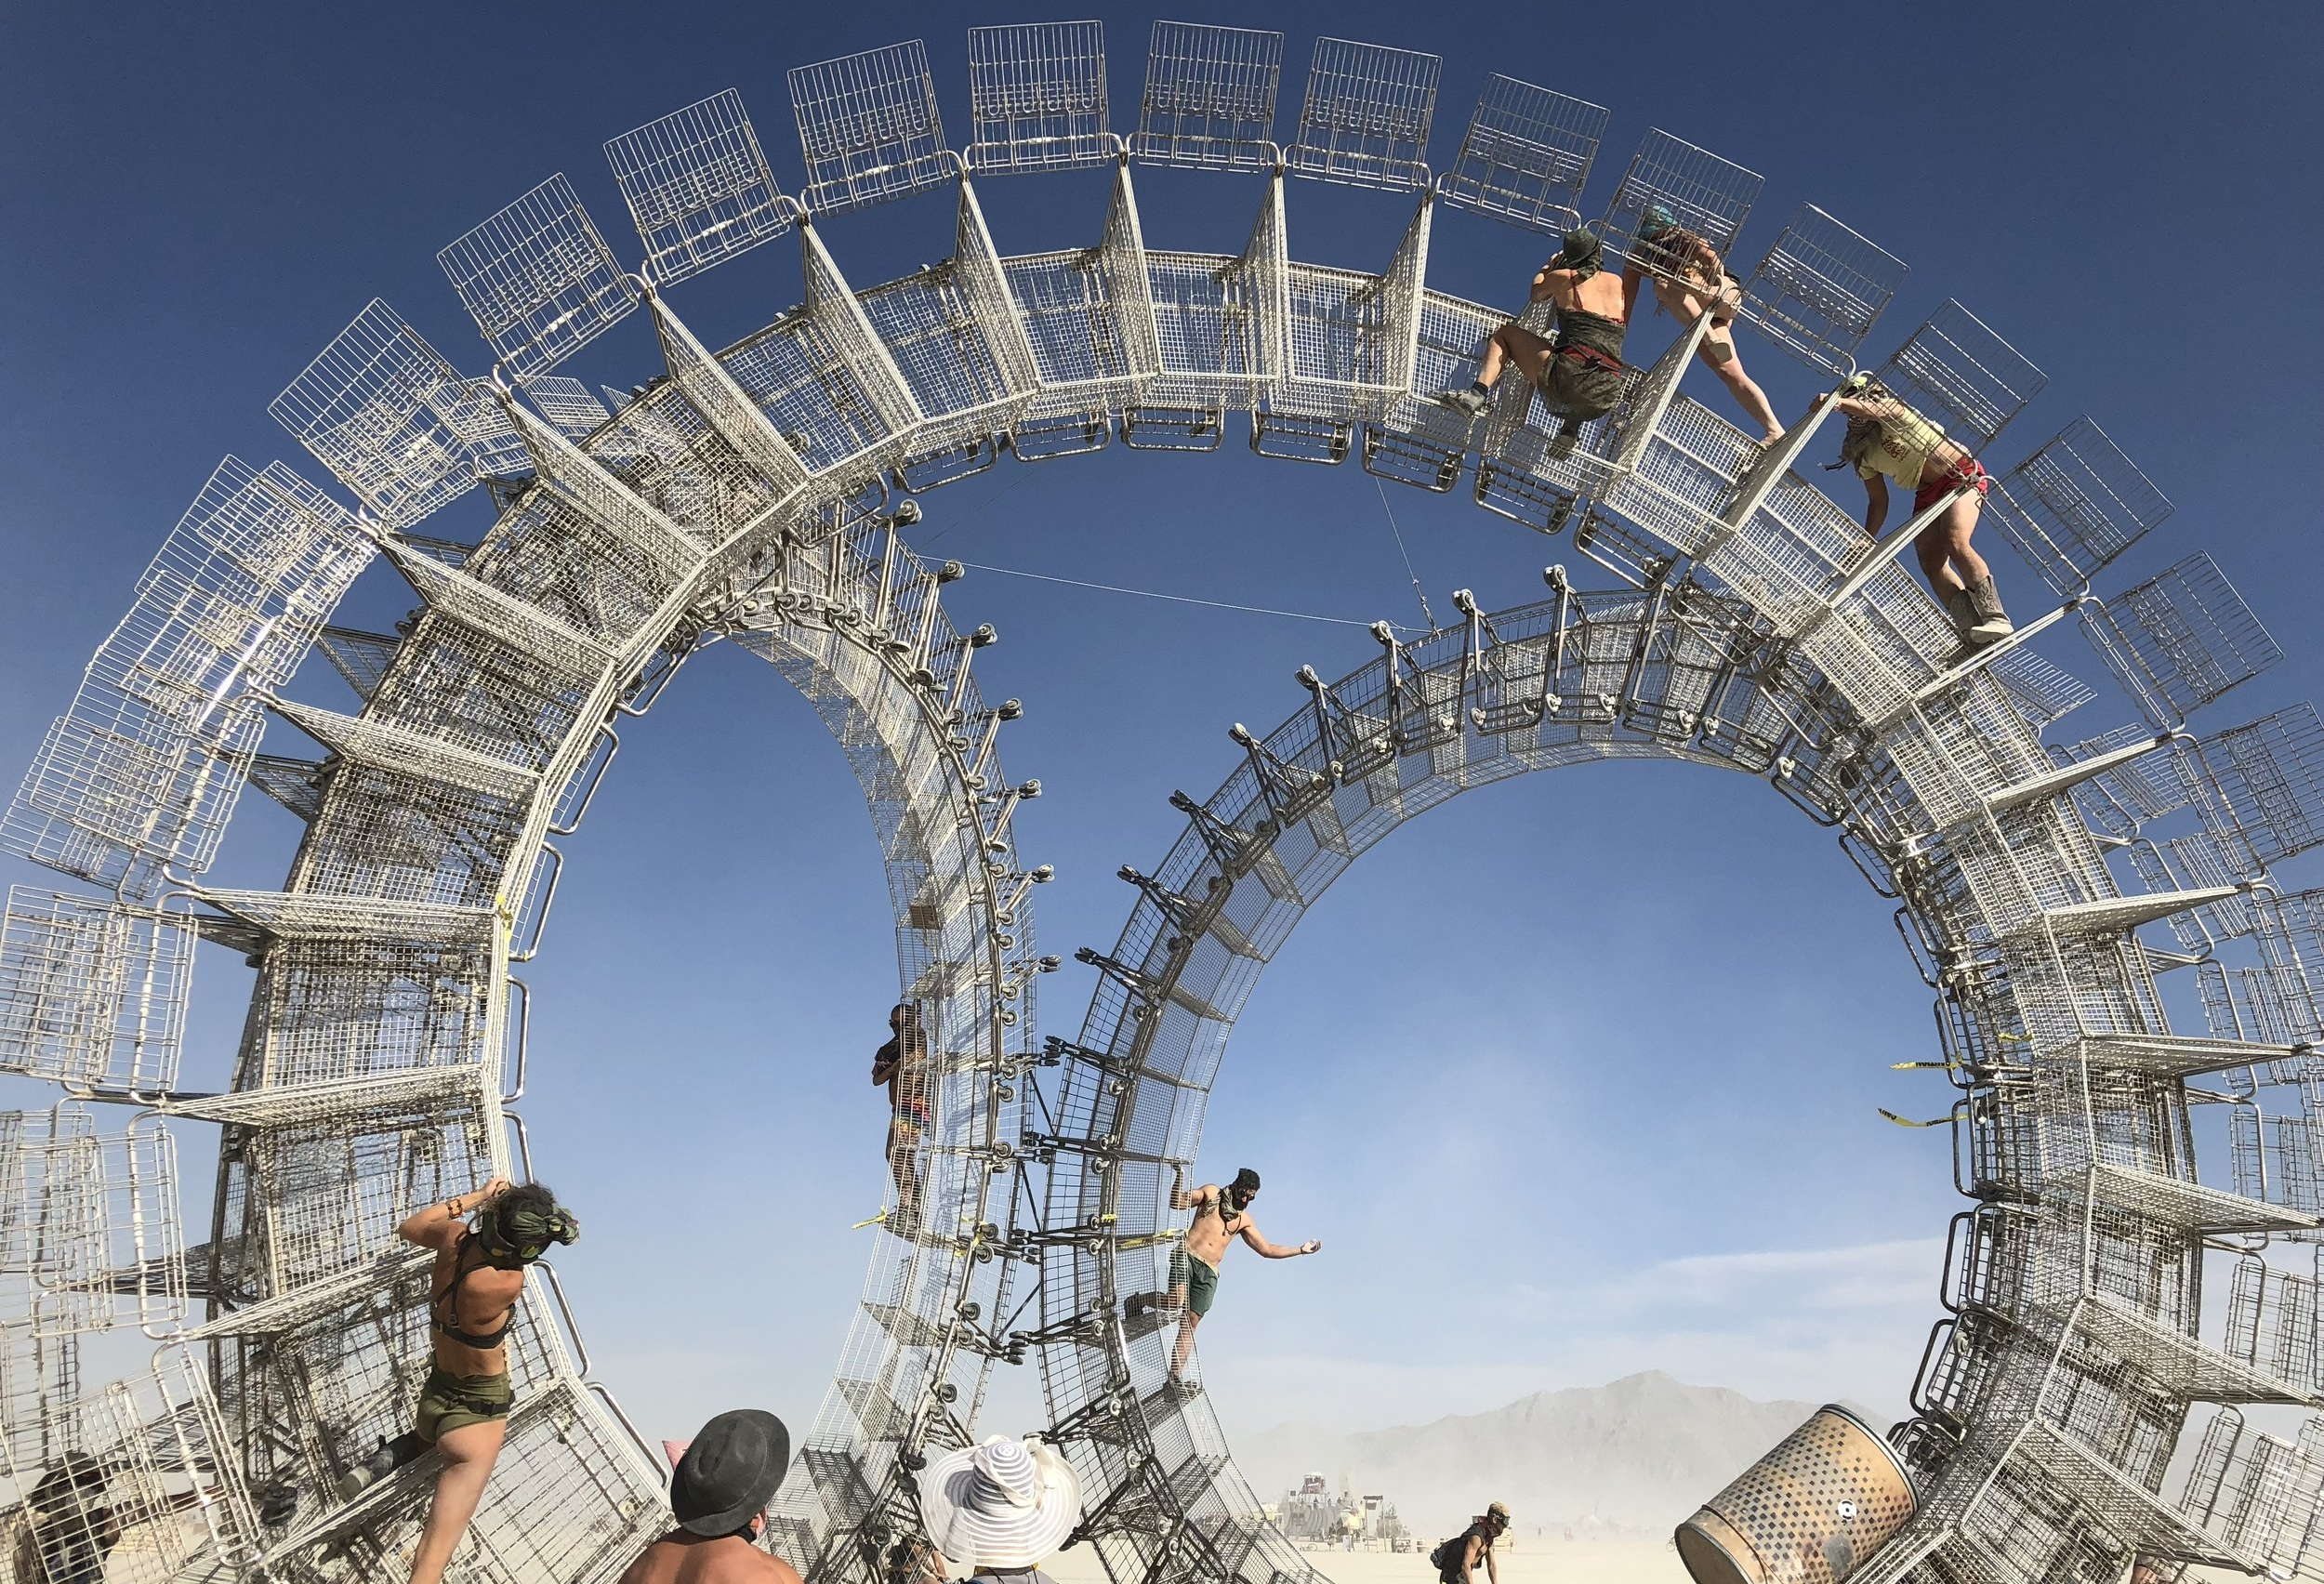 WHAT CAN AUSTRALIA LEARN FROM BURNING MAN? - THE AUSTRALIAN ART CURATOR BLOG